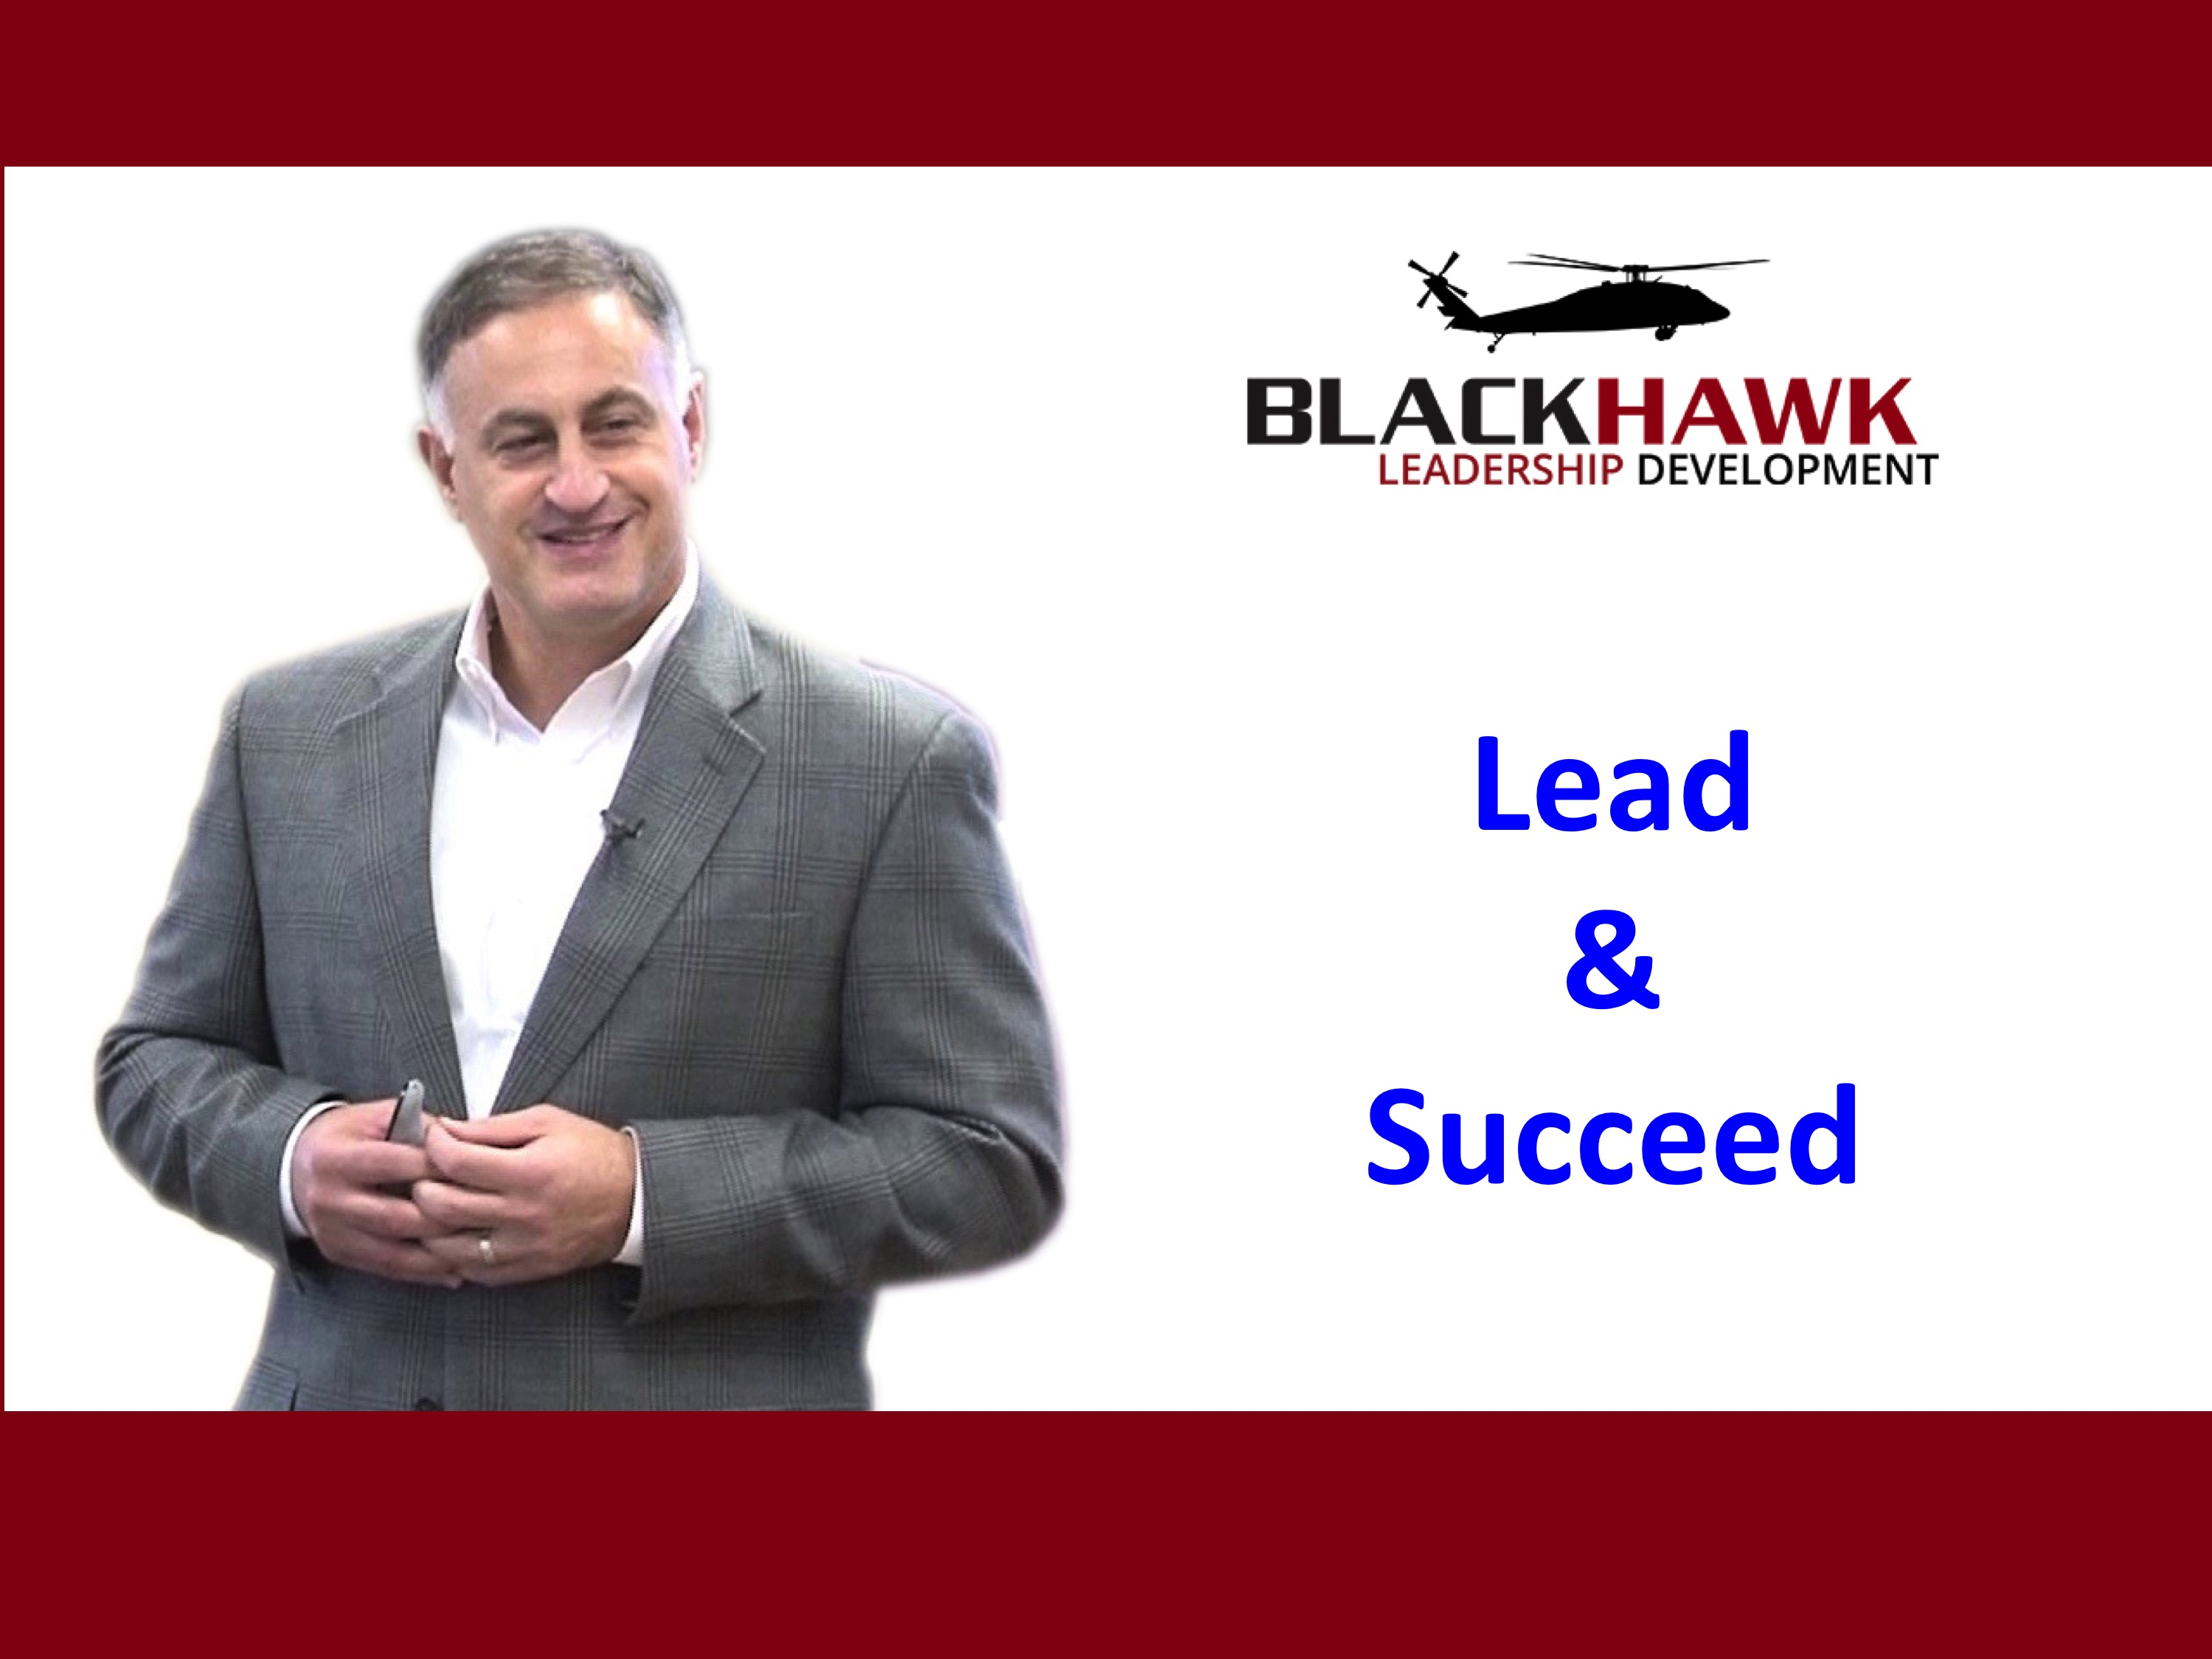 Lead & Succeed